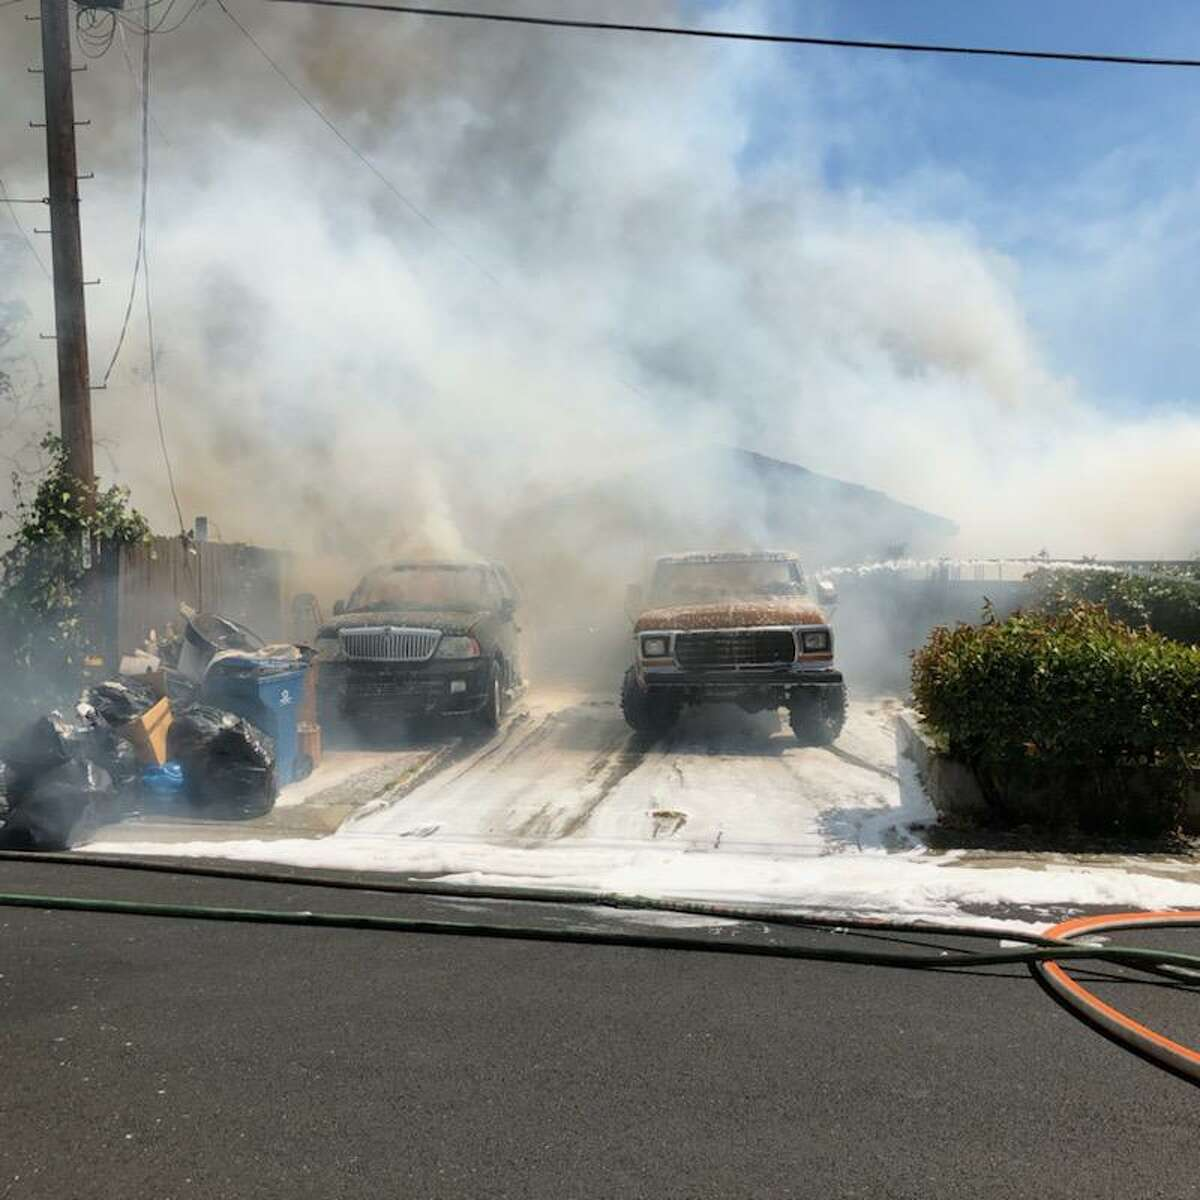 Firefighters from the Contra Costa County Fire Protection District battled a fire that burned two homes in Pleasant Hill on Monday, June 21, 2021.